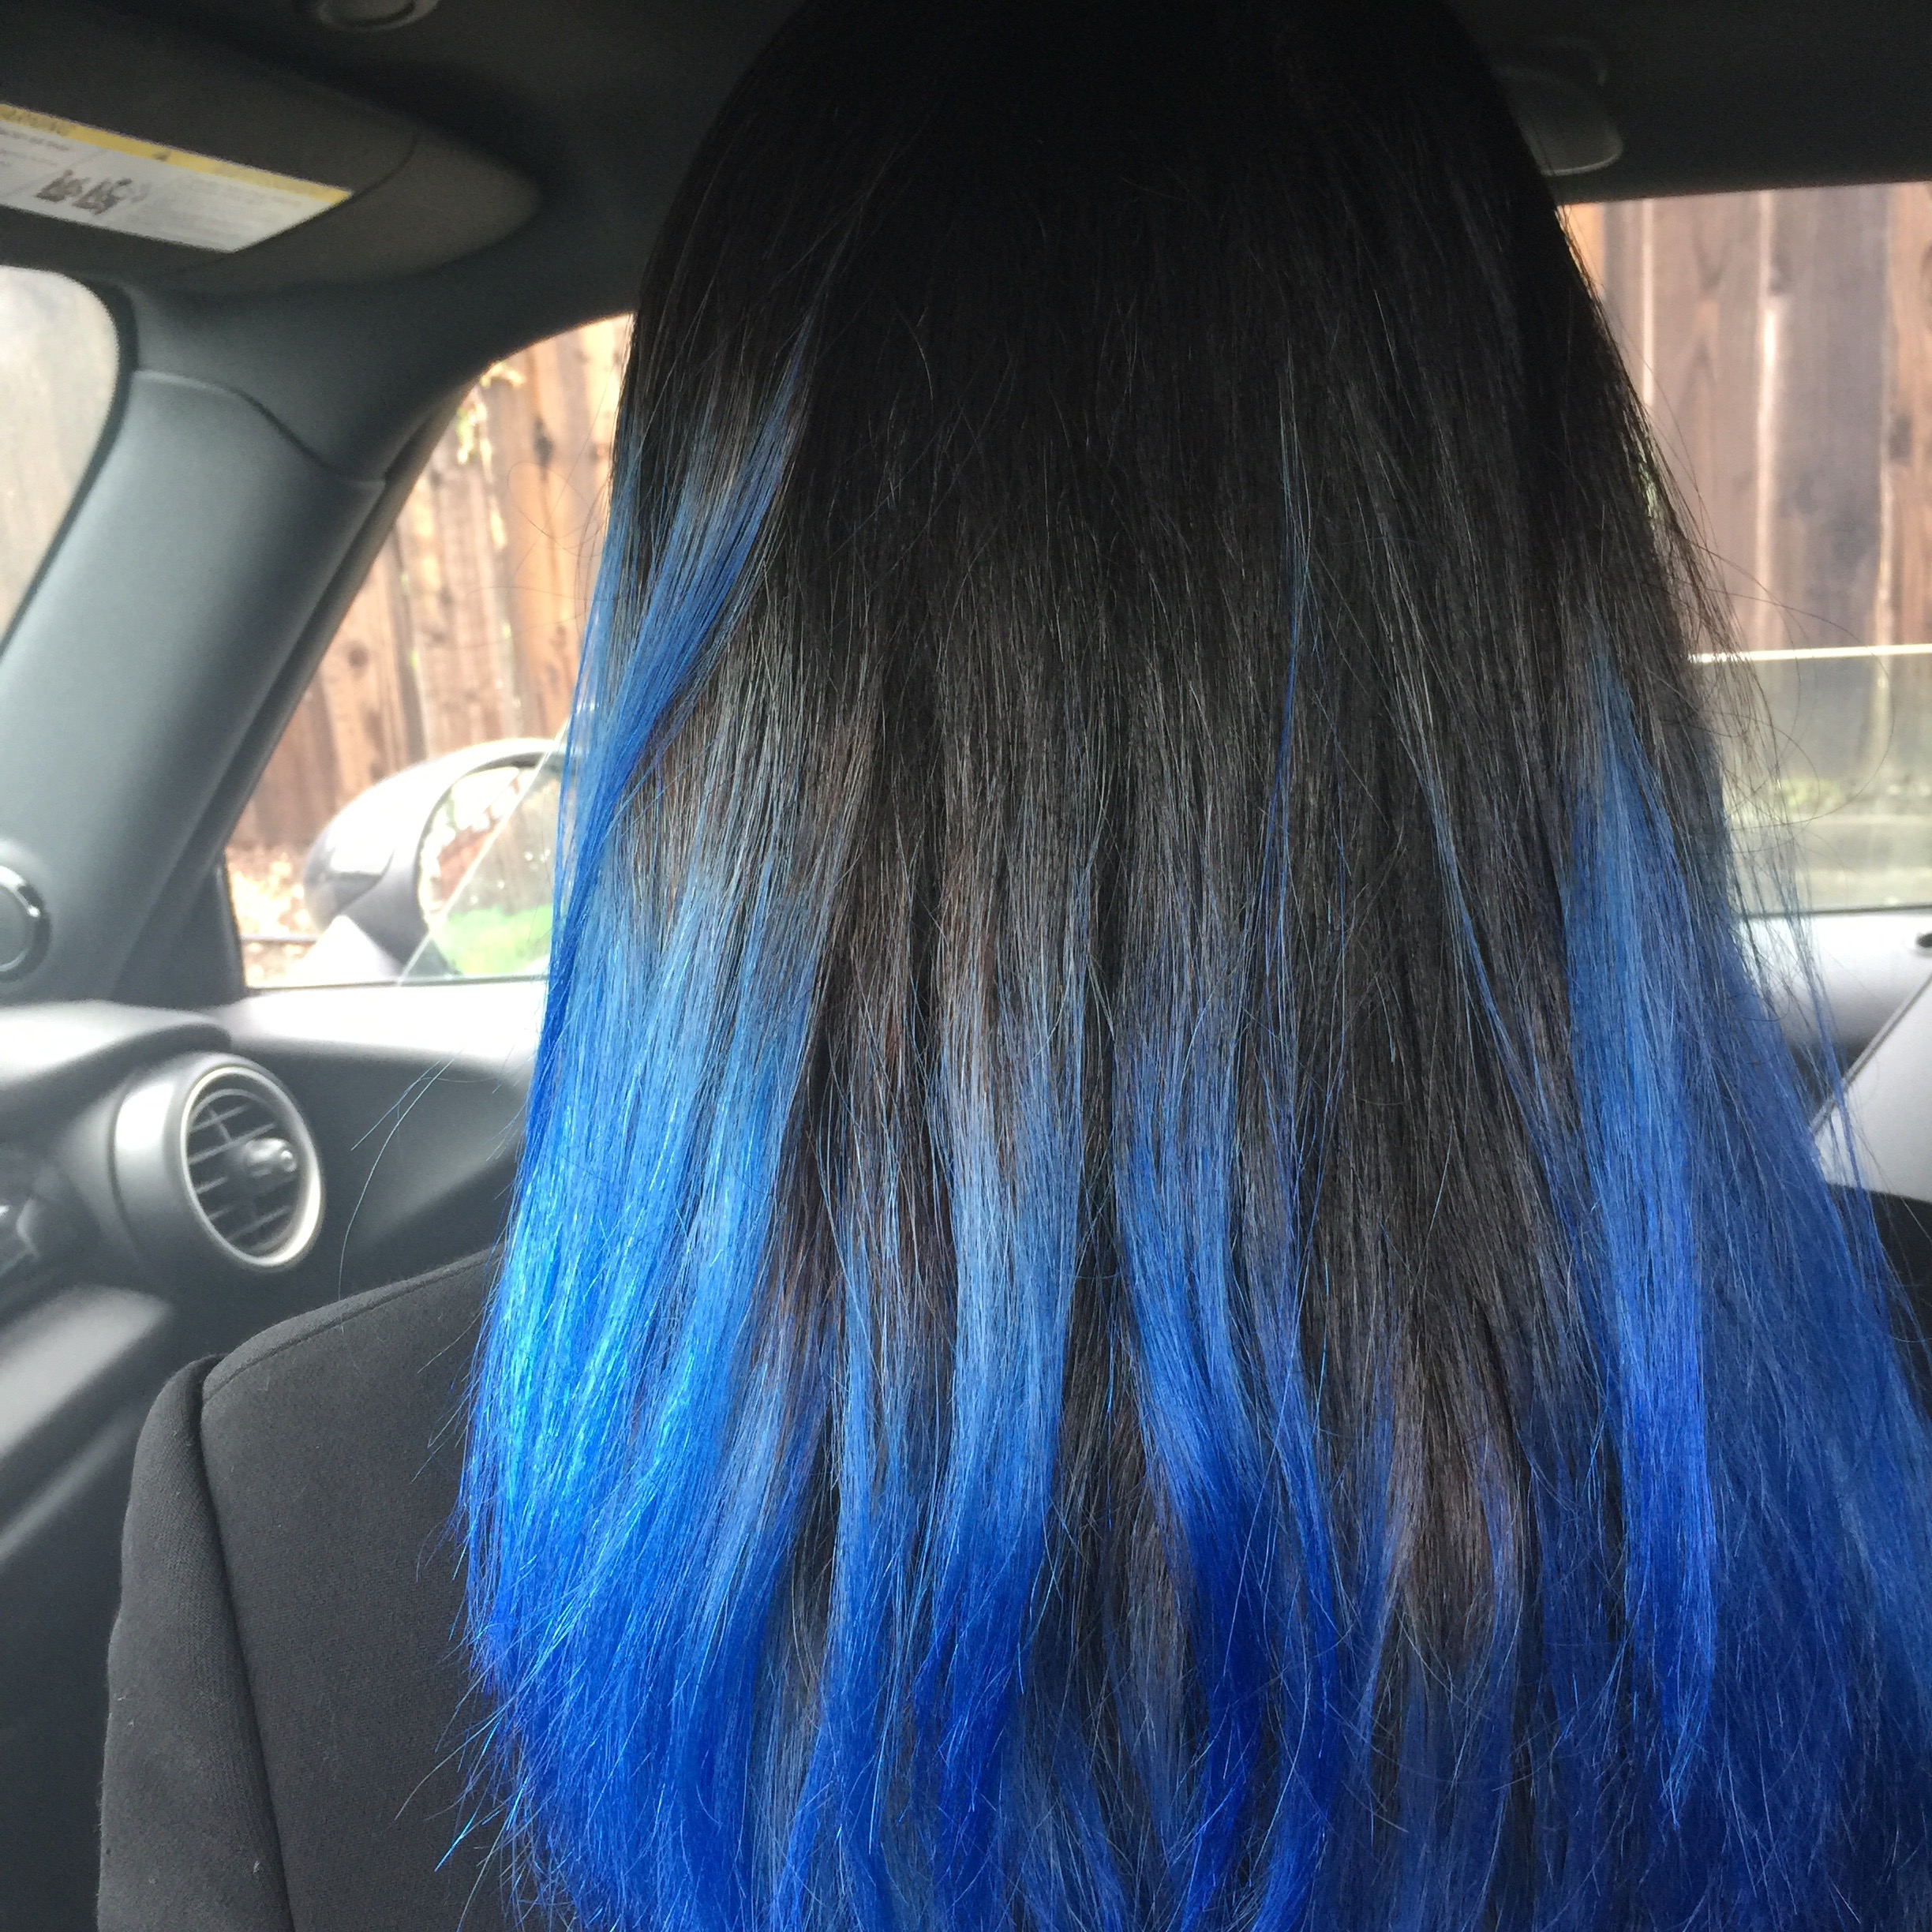 no filter  | I loveee how vibrant the blue color is on my hair, I actually think this is the best out of the three blues on the oVertone site